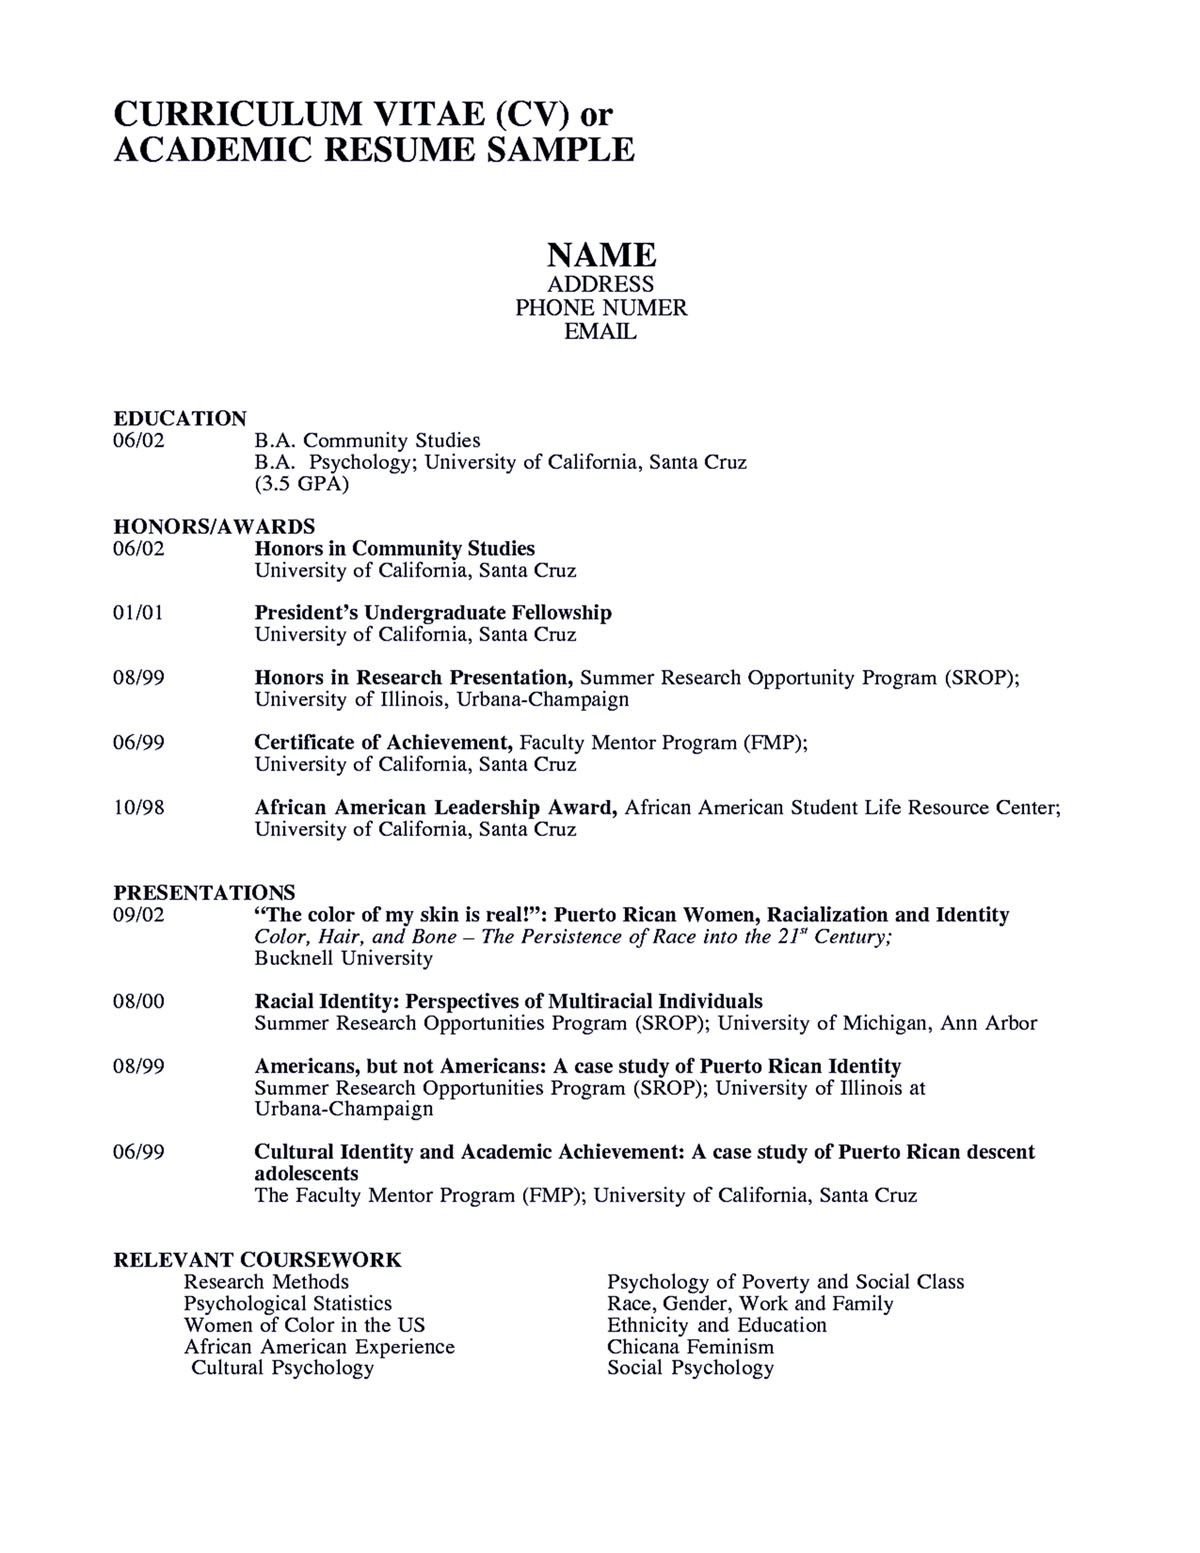 academic resume sample shows you how to make academic resume outstandingly so the resume will